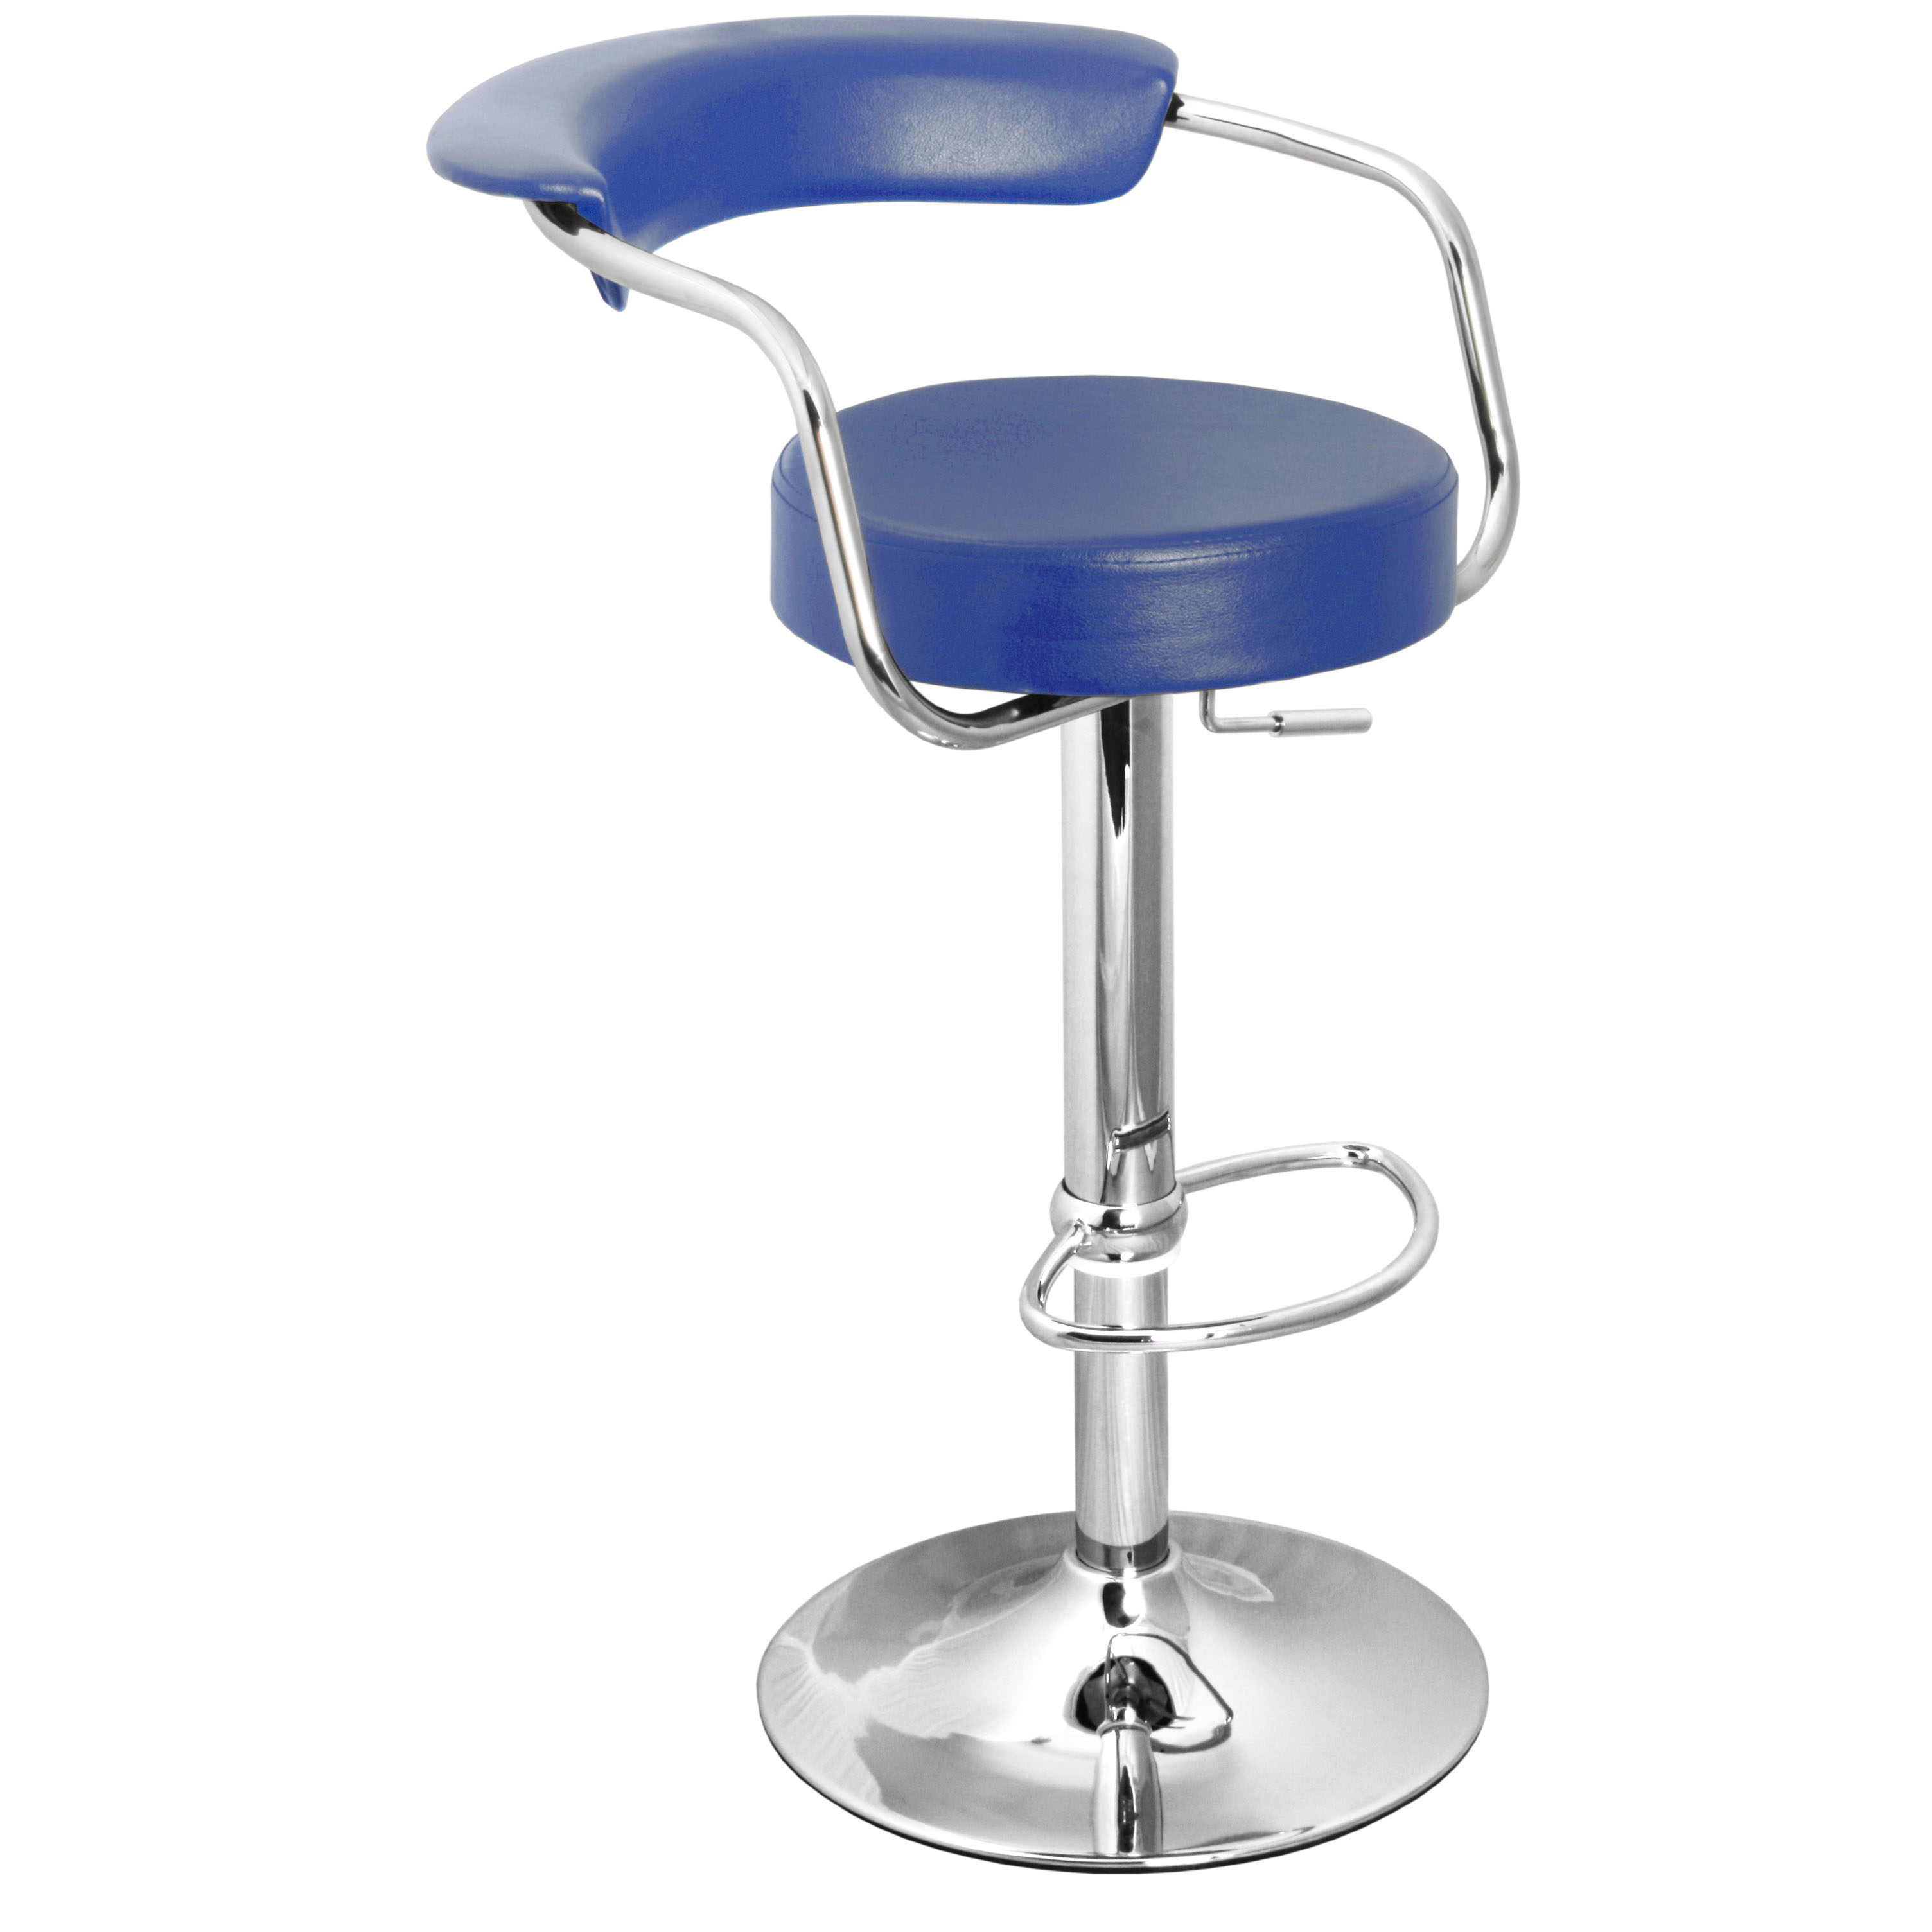 Zenith Bar Stool with Arms - Blue